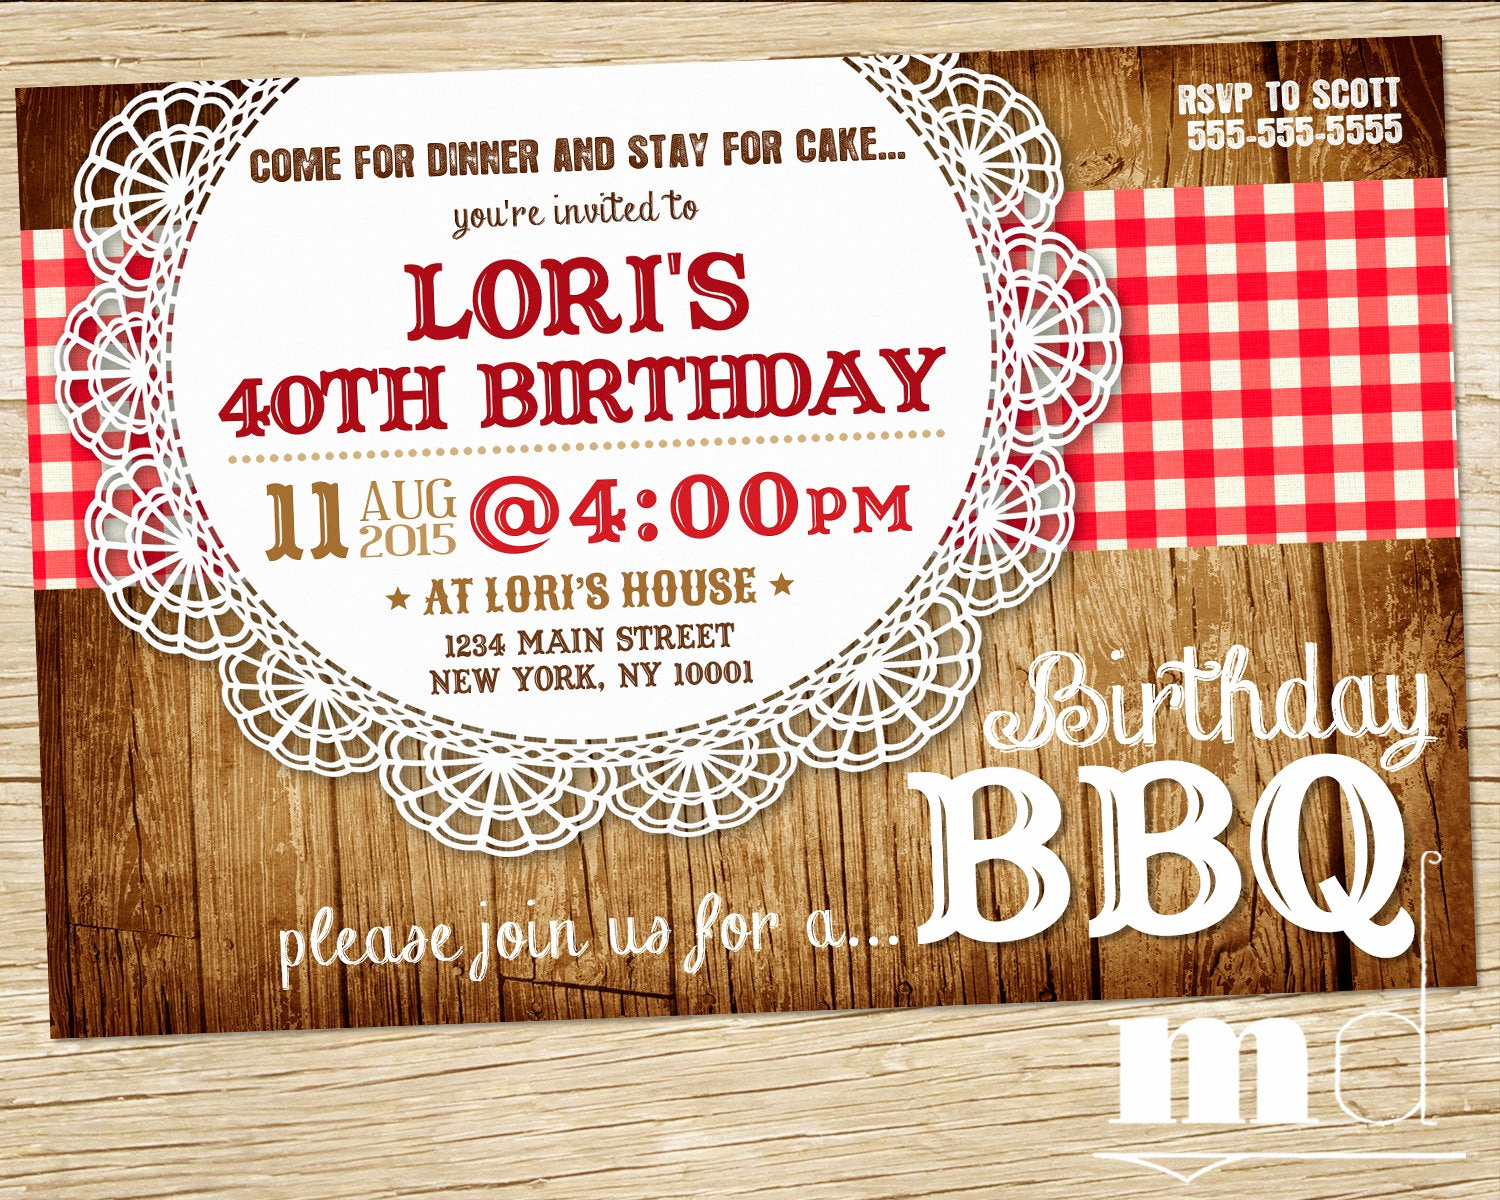 Potluck Bbq Invitation Wording Beautiful Bbq Birthday Invite Barbecue Birthday Invitation Picnic